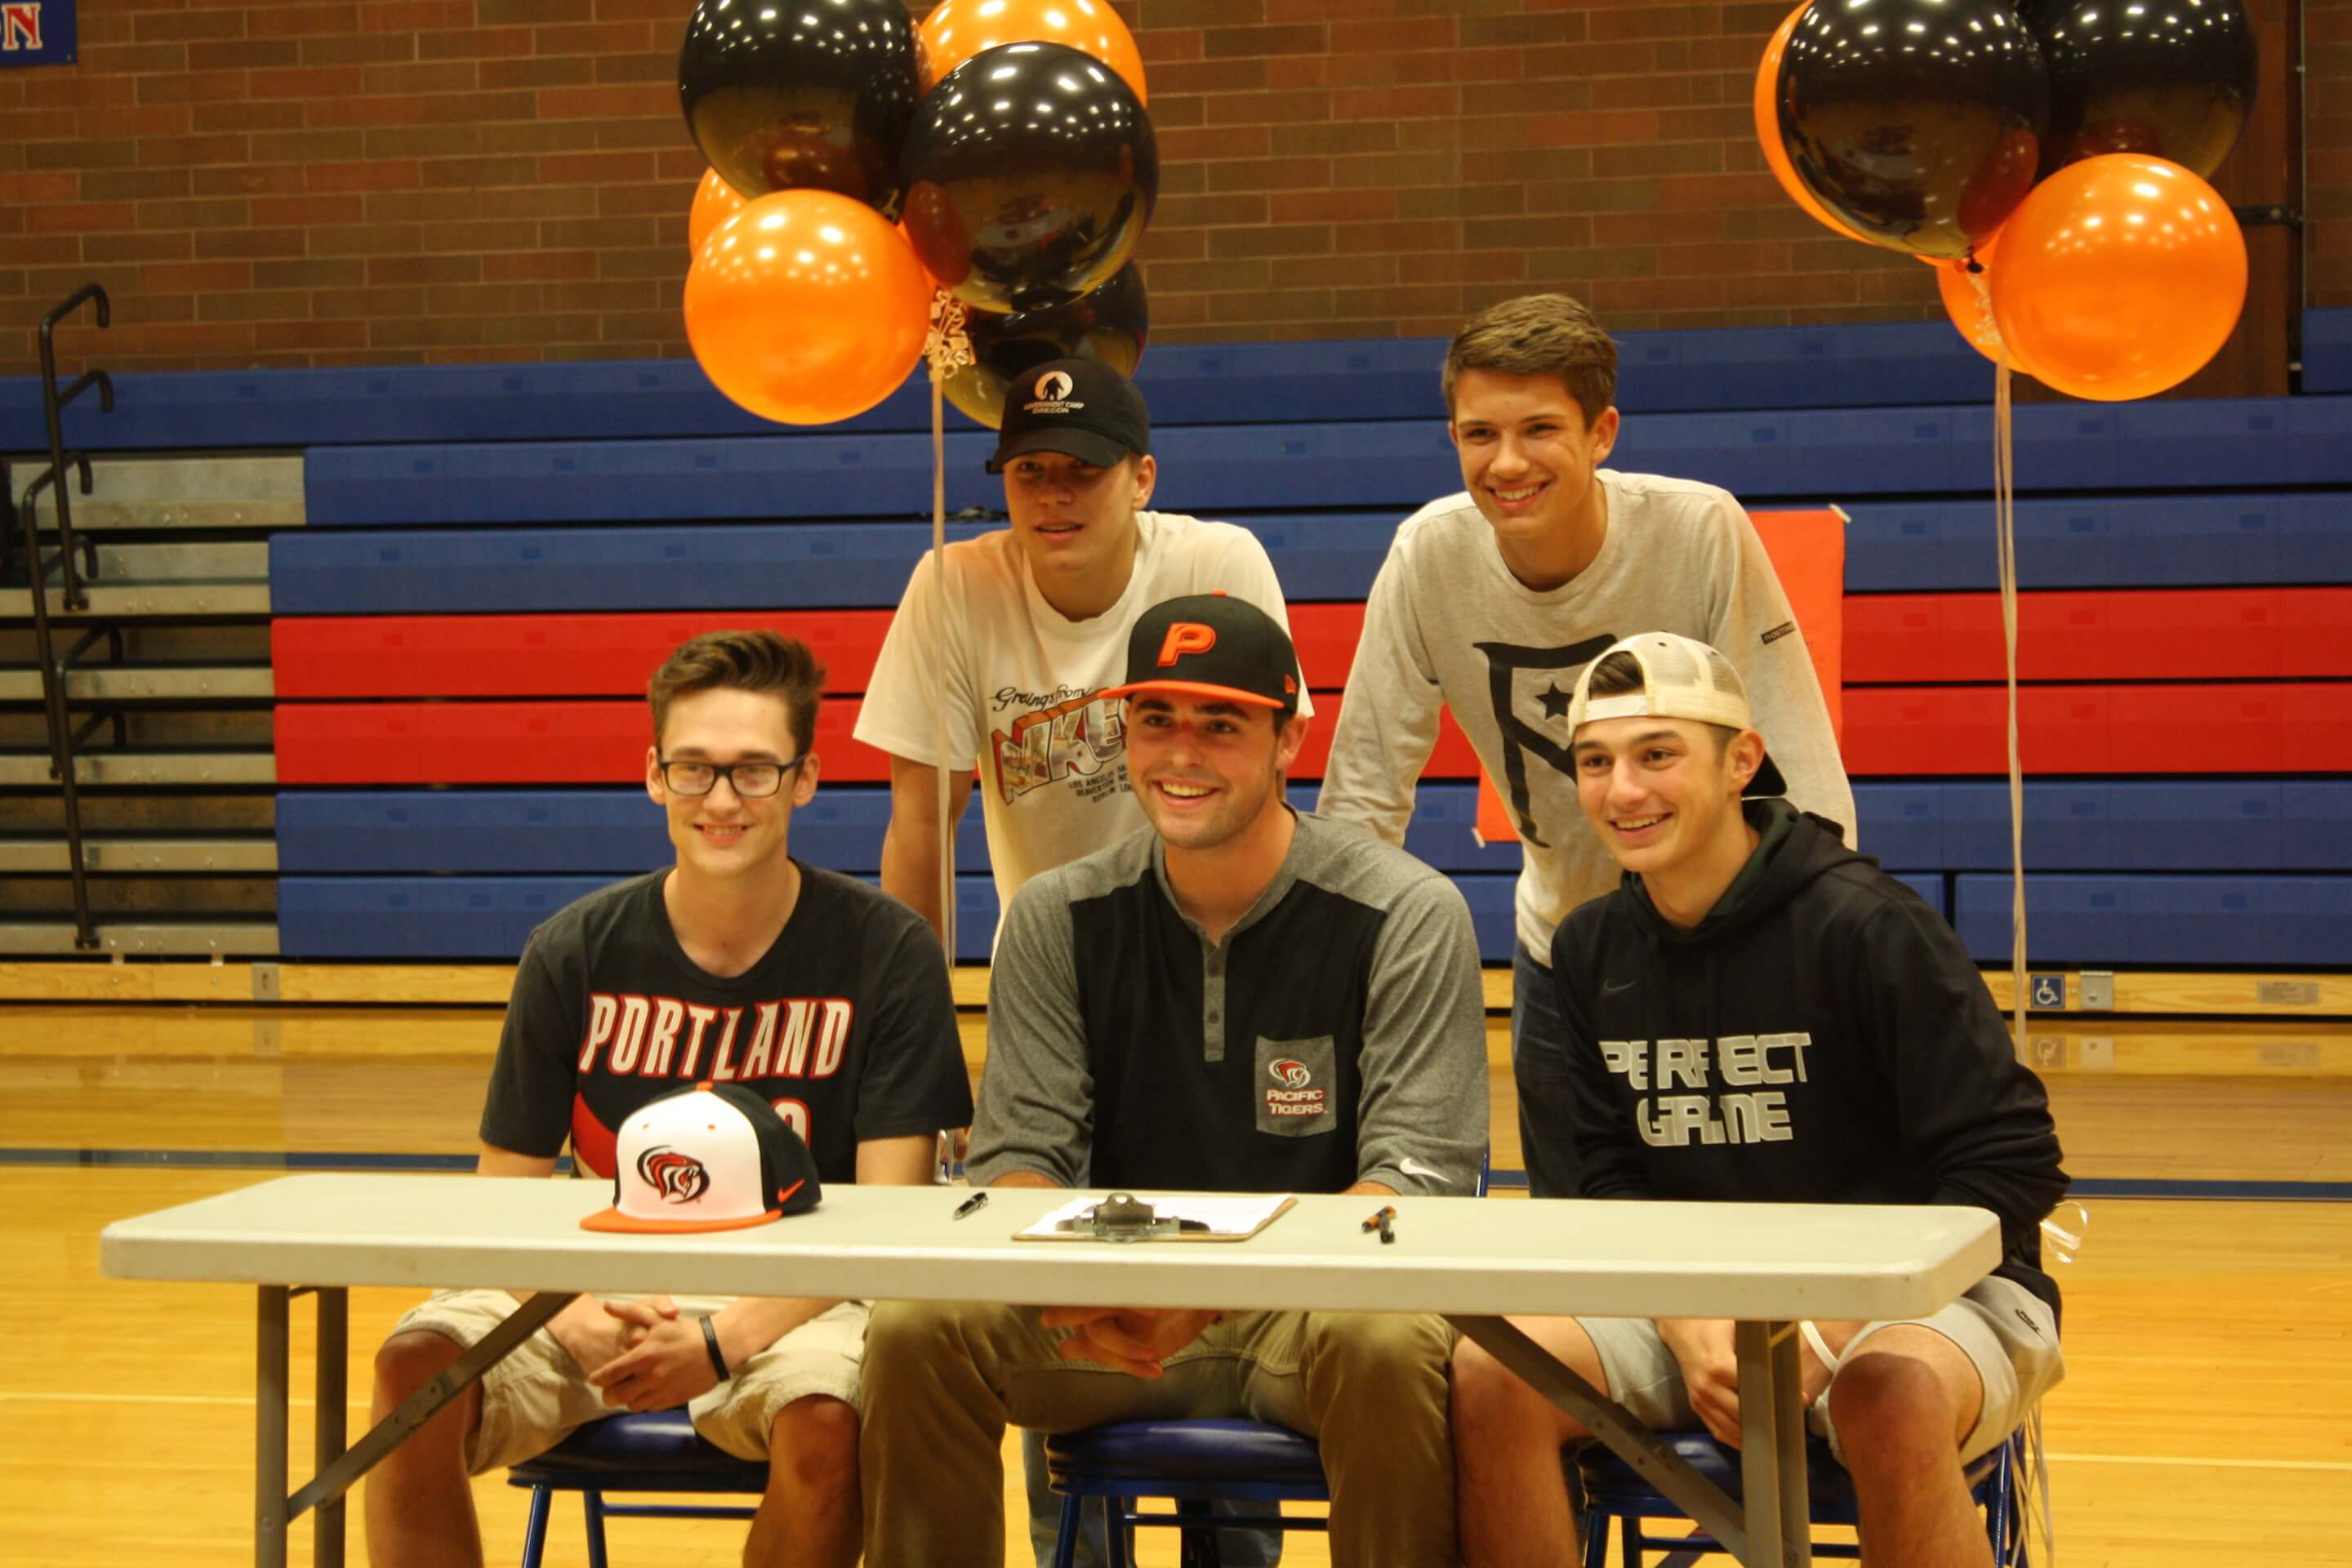 Ole Arnston, center, has committed to playing Division-1 baseball at The University of the Pacific.